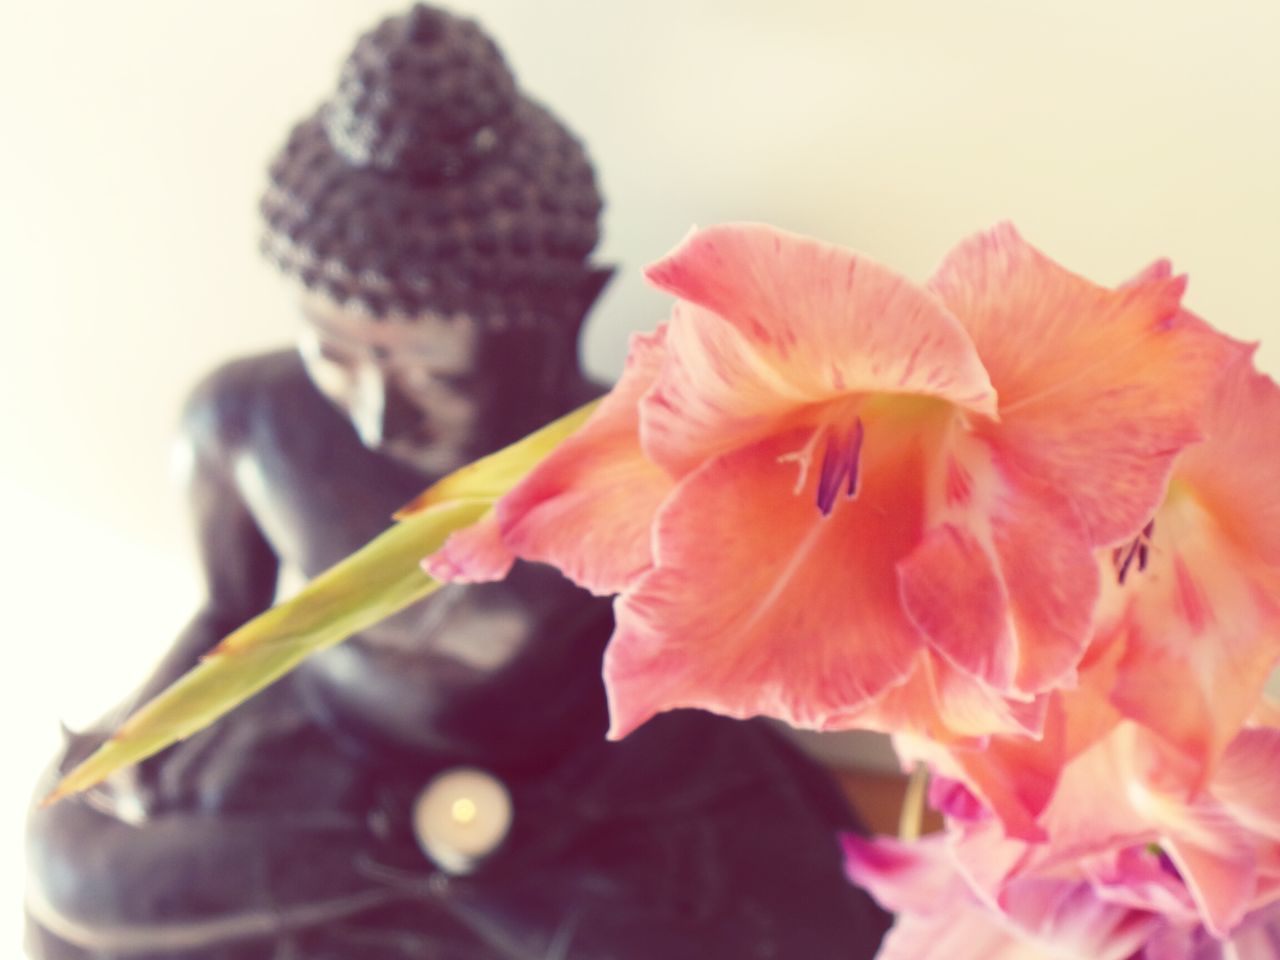 Weekend of Zen. Flower Zen Calm Serenity Serene Buddha Buddha Flowers Candlelight Meditation Yoga